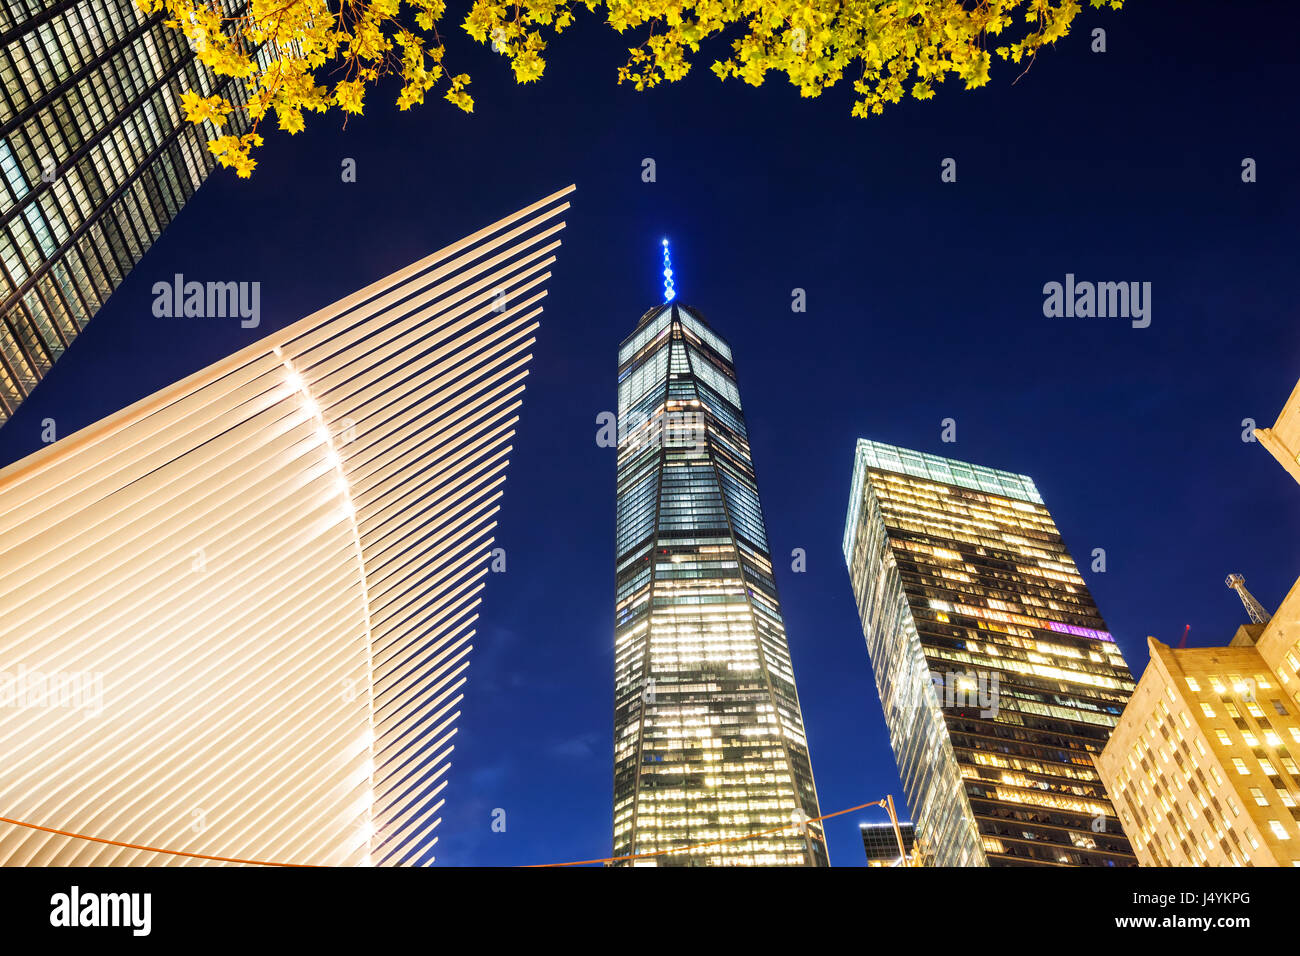 One World Trade Center at night - Stock Image